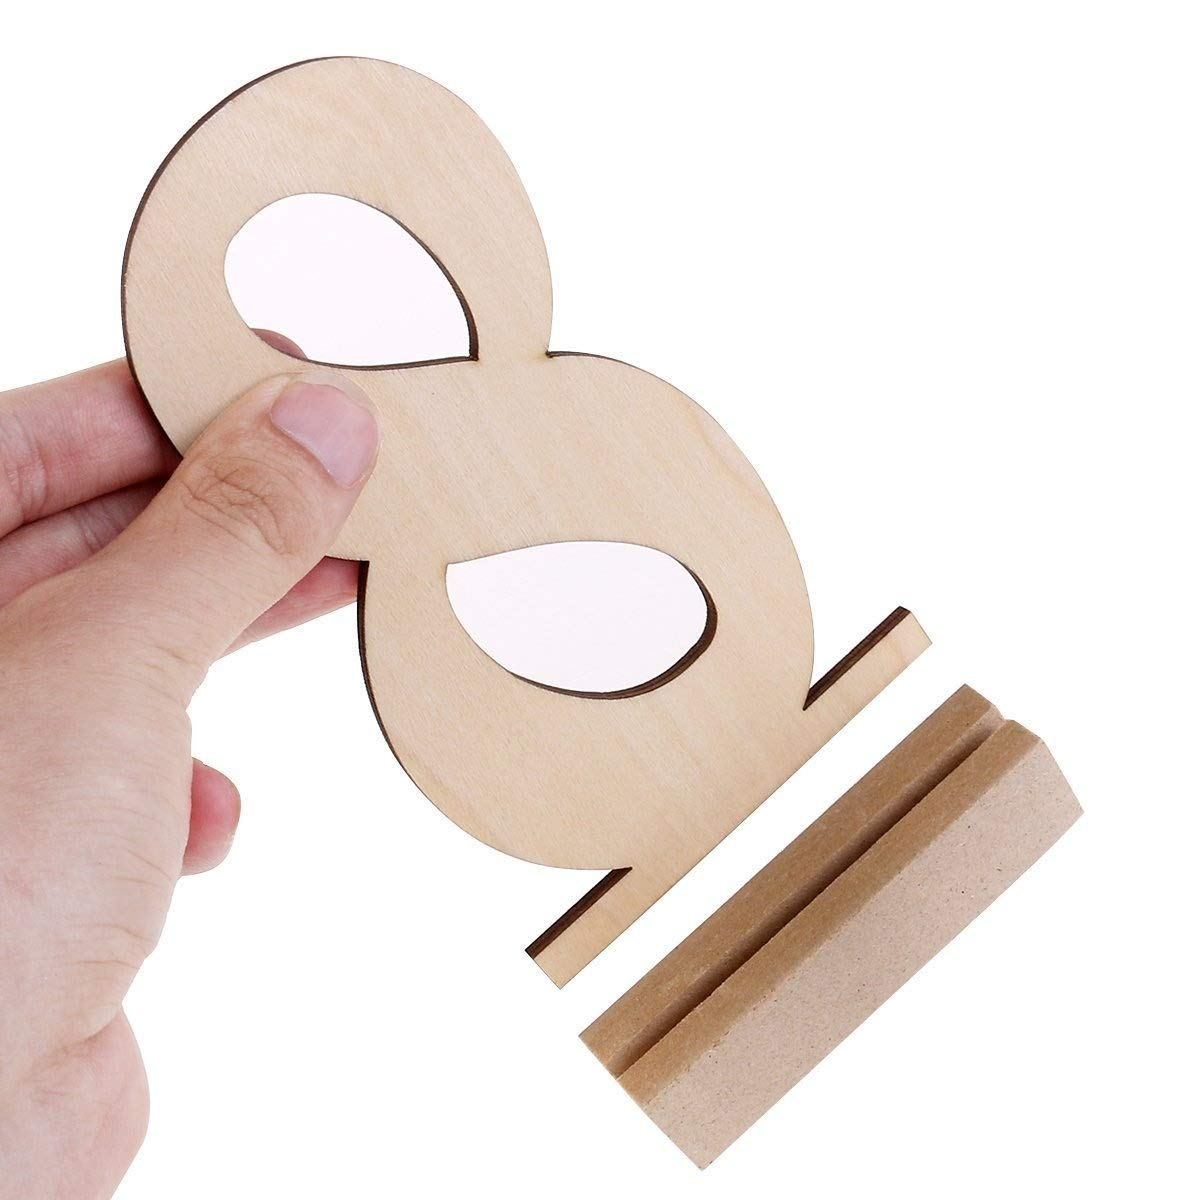 Events or Catering Decoration Artliving 20pcs 1-20 Wooden Wedding Table Number Holders for Wedding Party